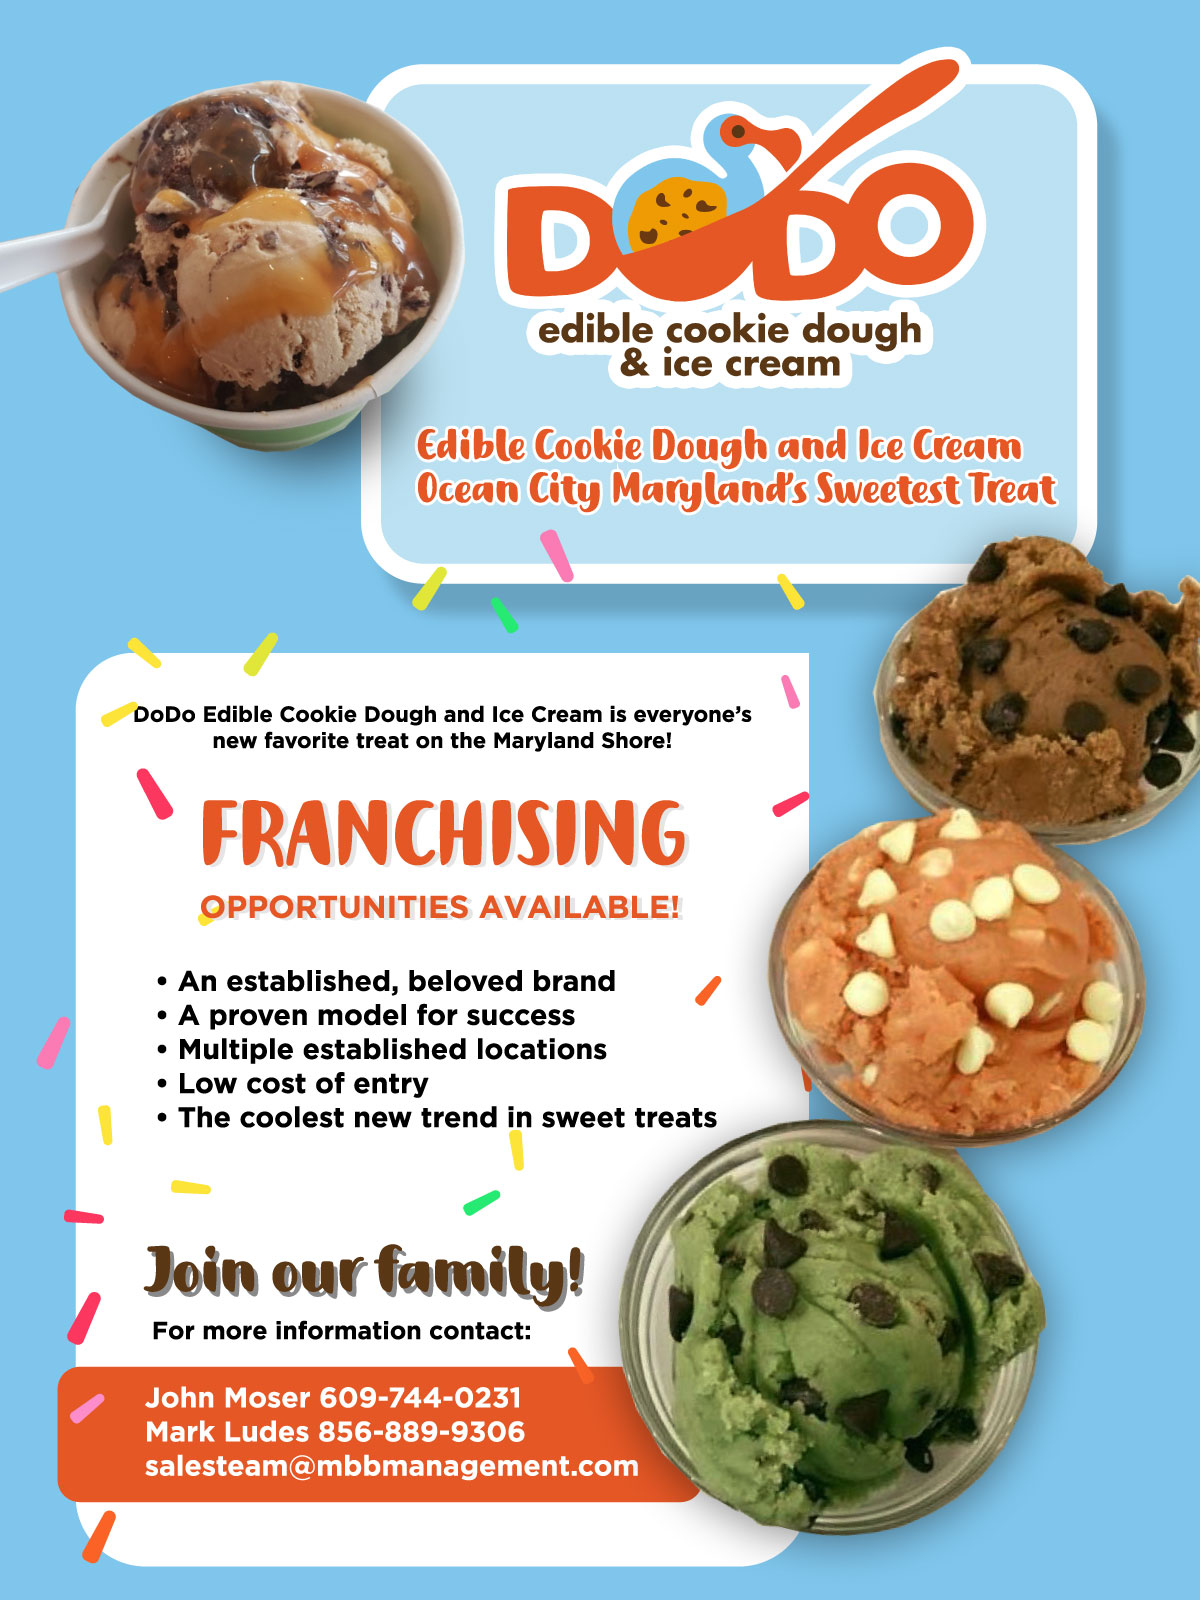 dodo-cookie-dough-franchising